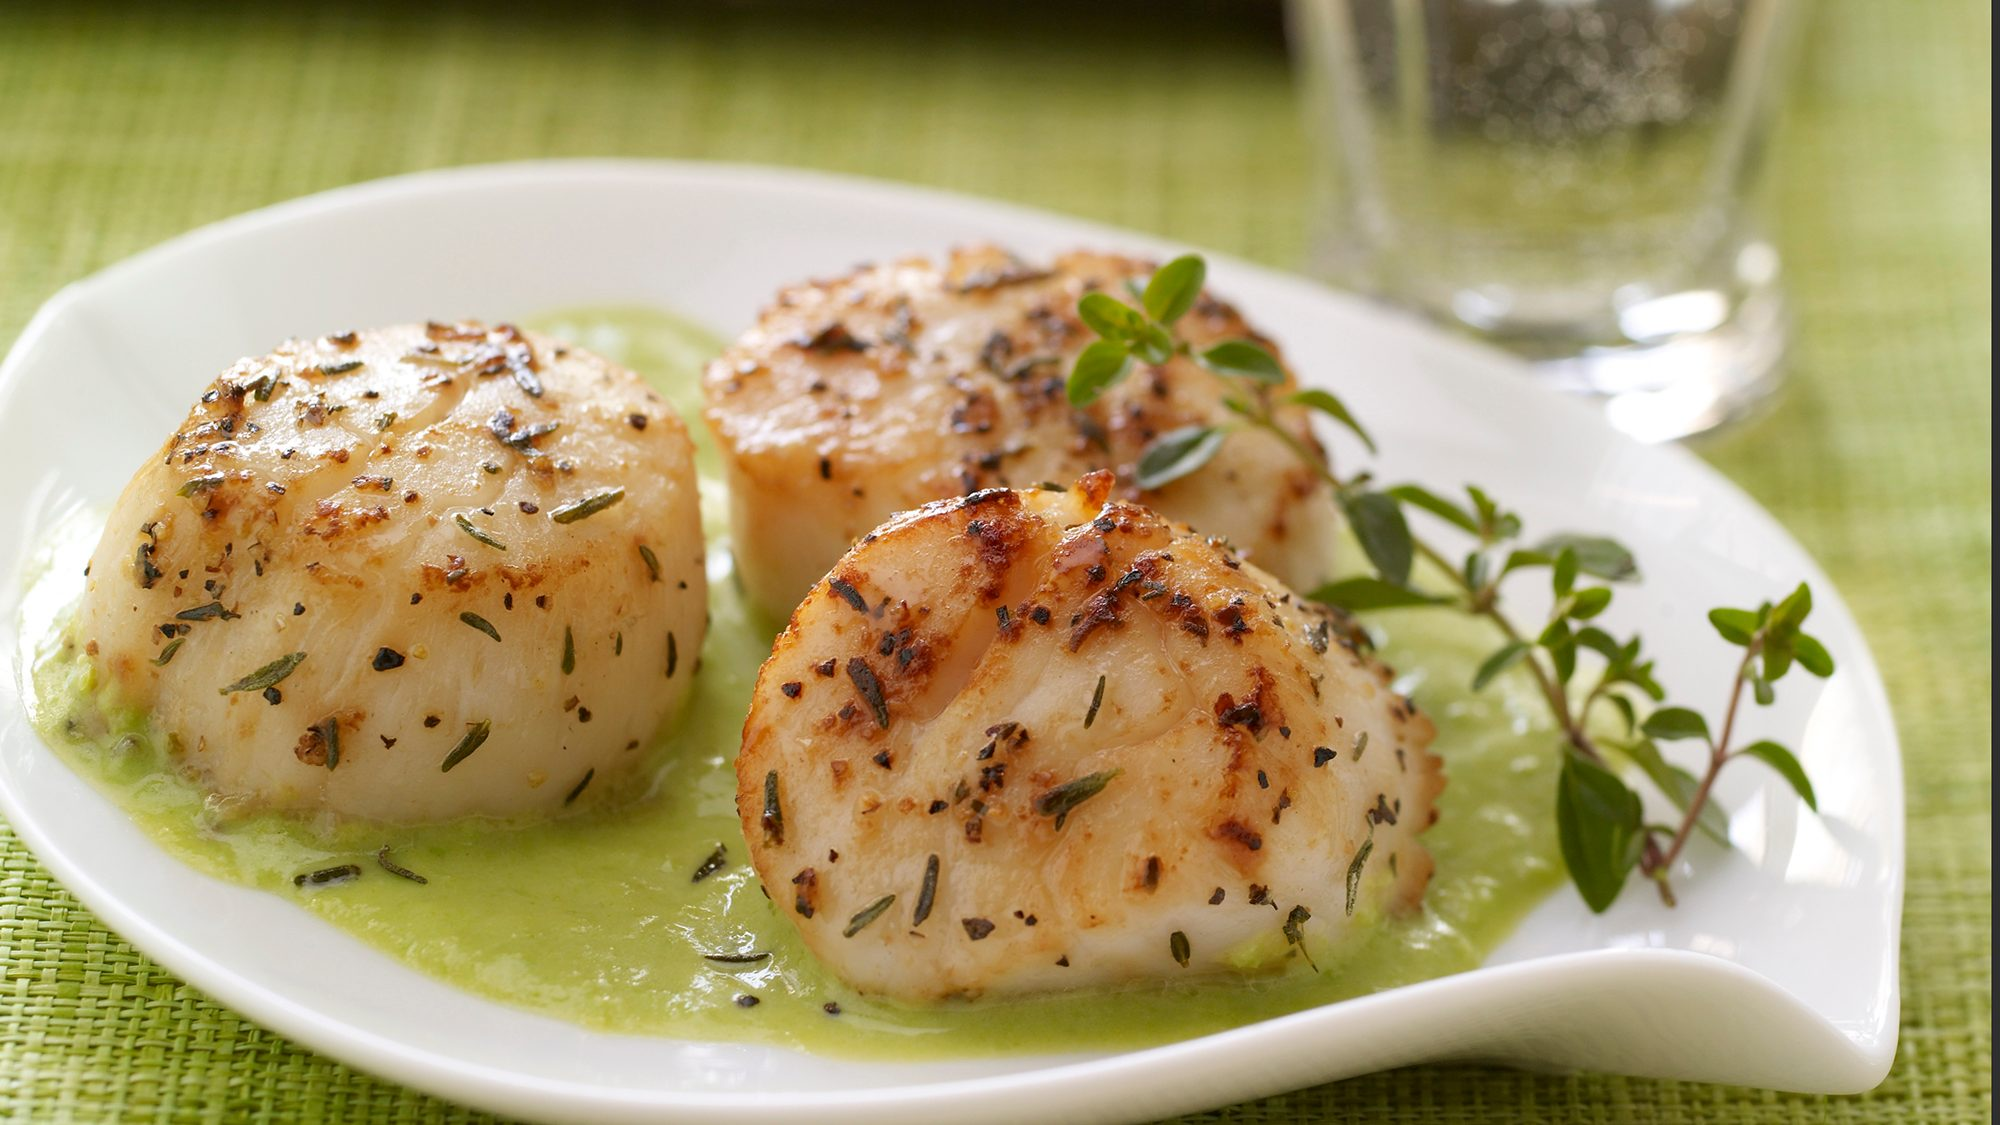 ginger-scallops-with-creamy-pea-puree.jpg